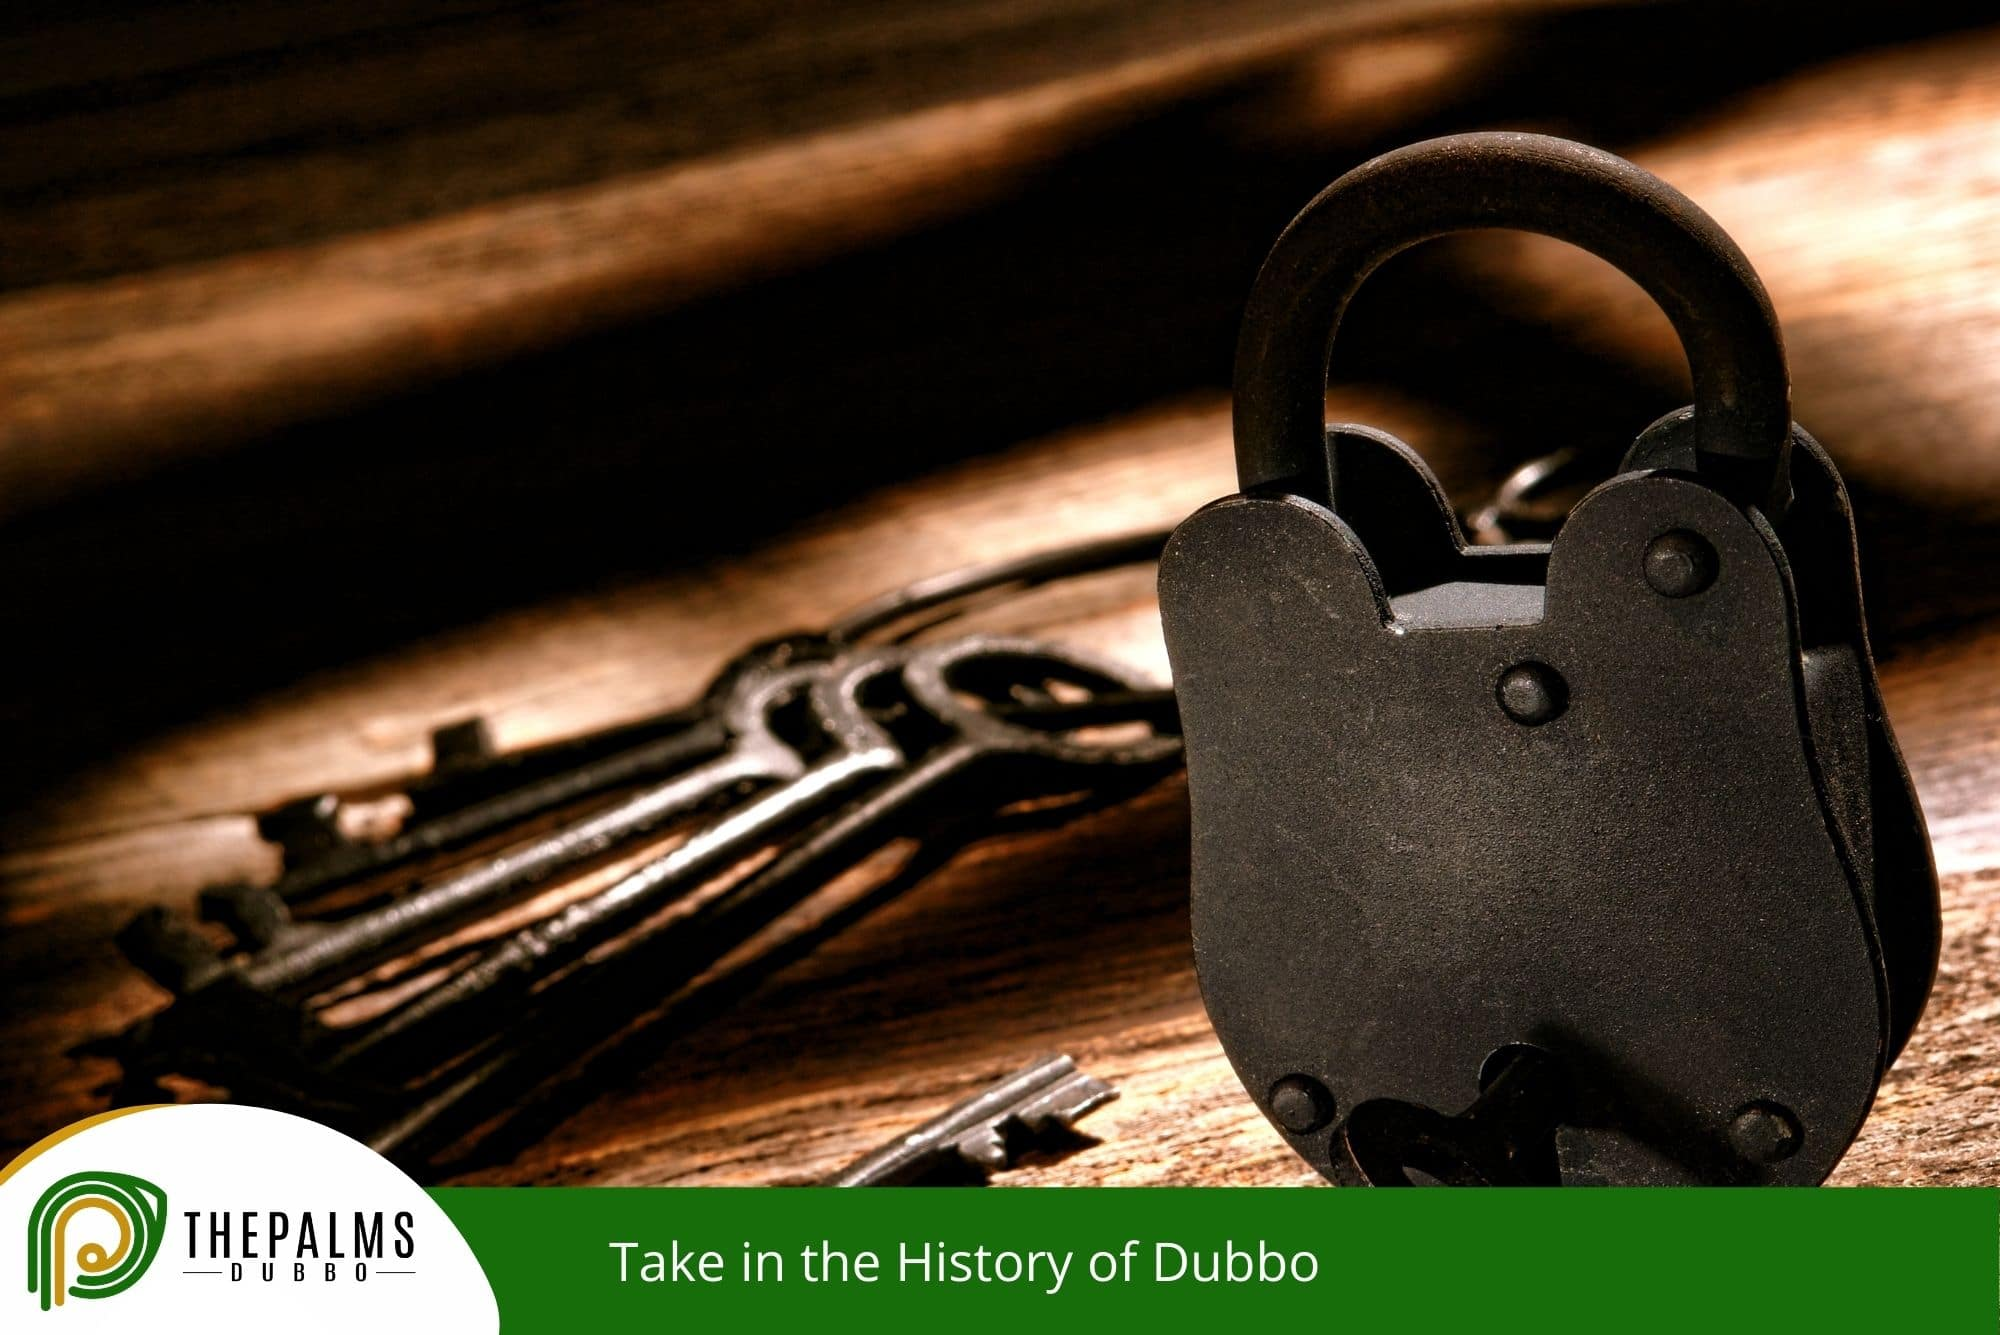 Take in the History of Dubbo